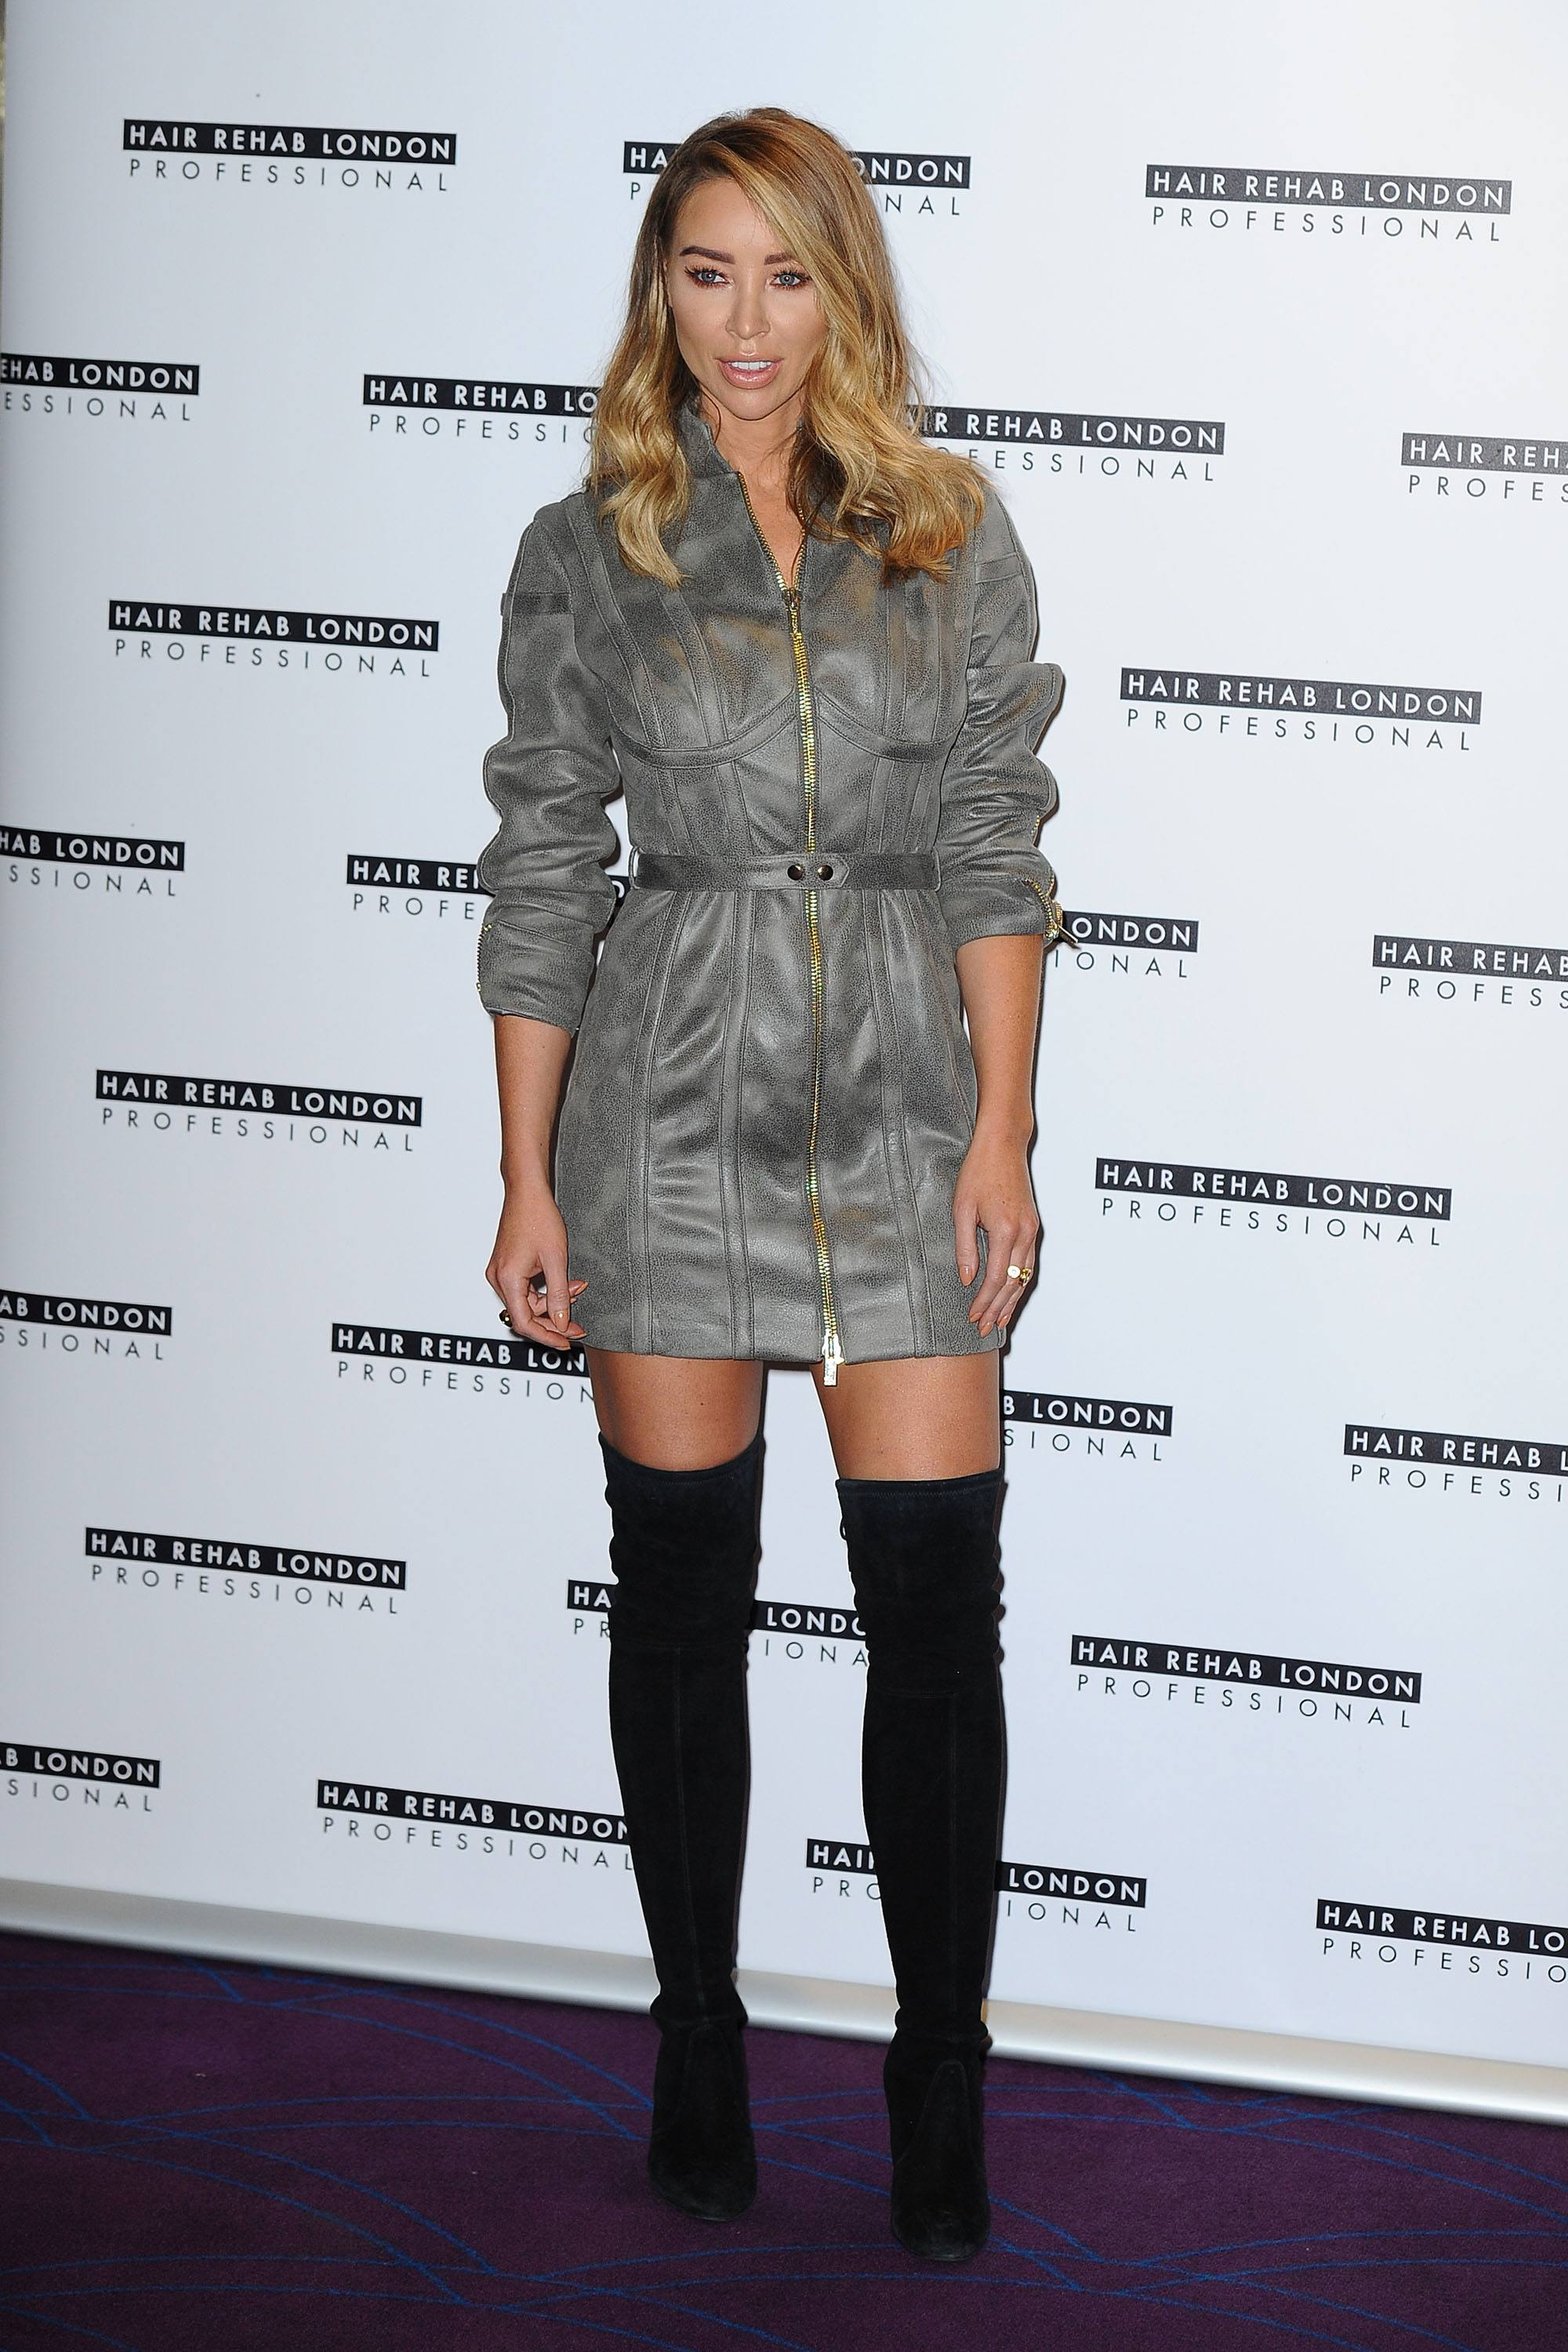 Lauren Pope Photocall for the Hair Rehab London line